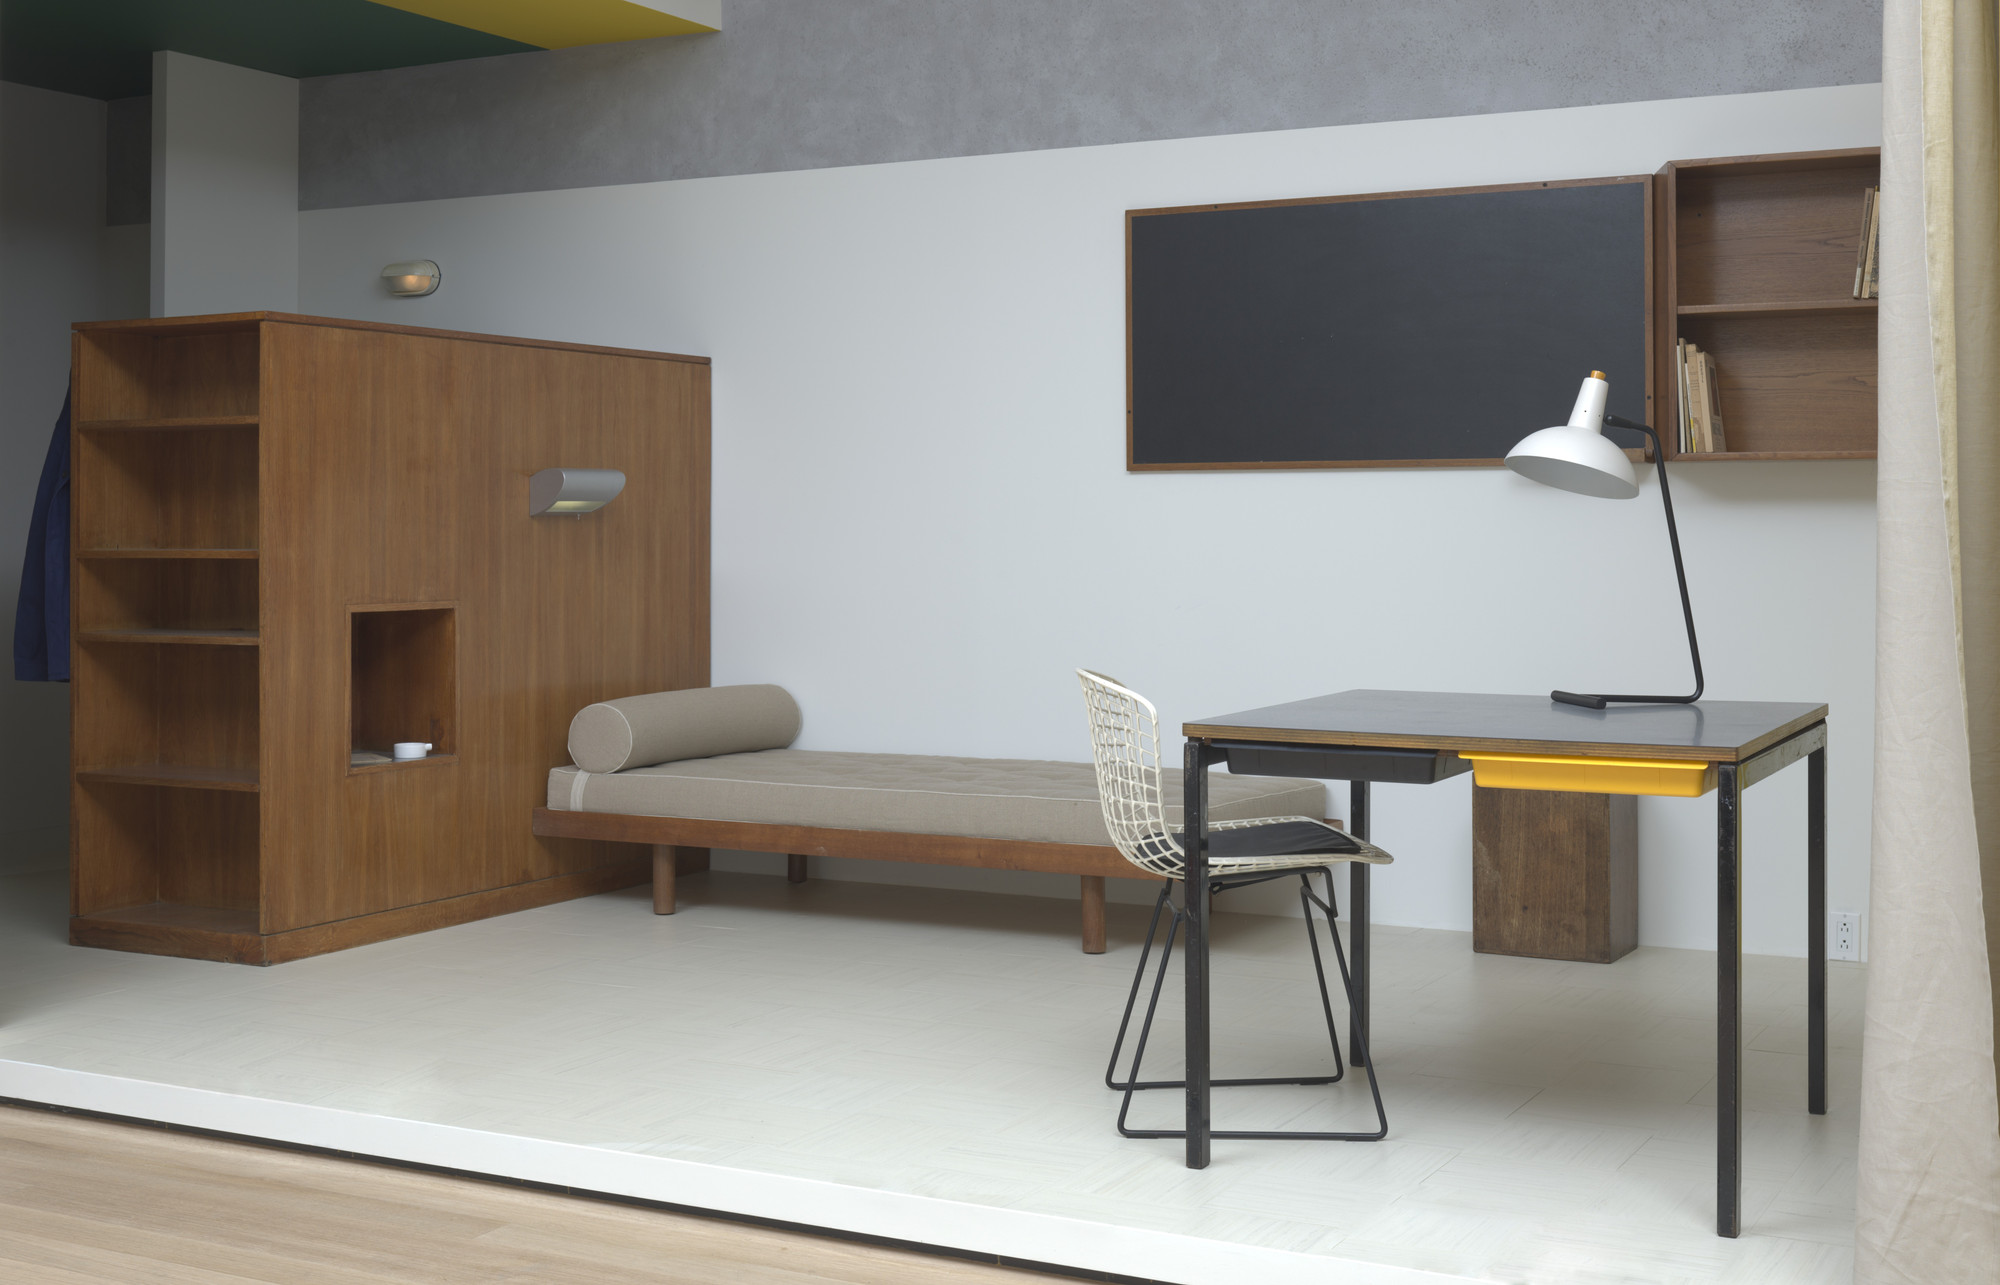 Charlotte Perriand, Le Corbusier (Charles-Édouard Jeanneret). Wall bookcase and blackboard from the Maison du Brésil. 1959